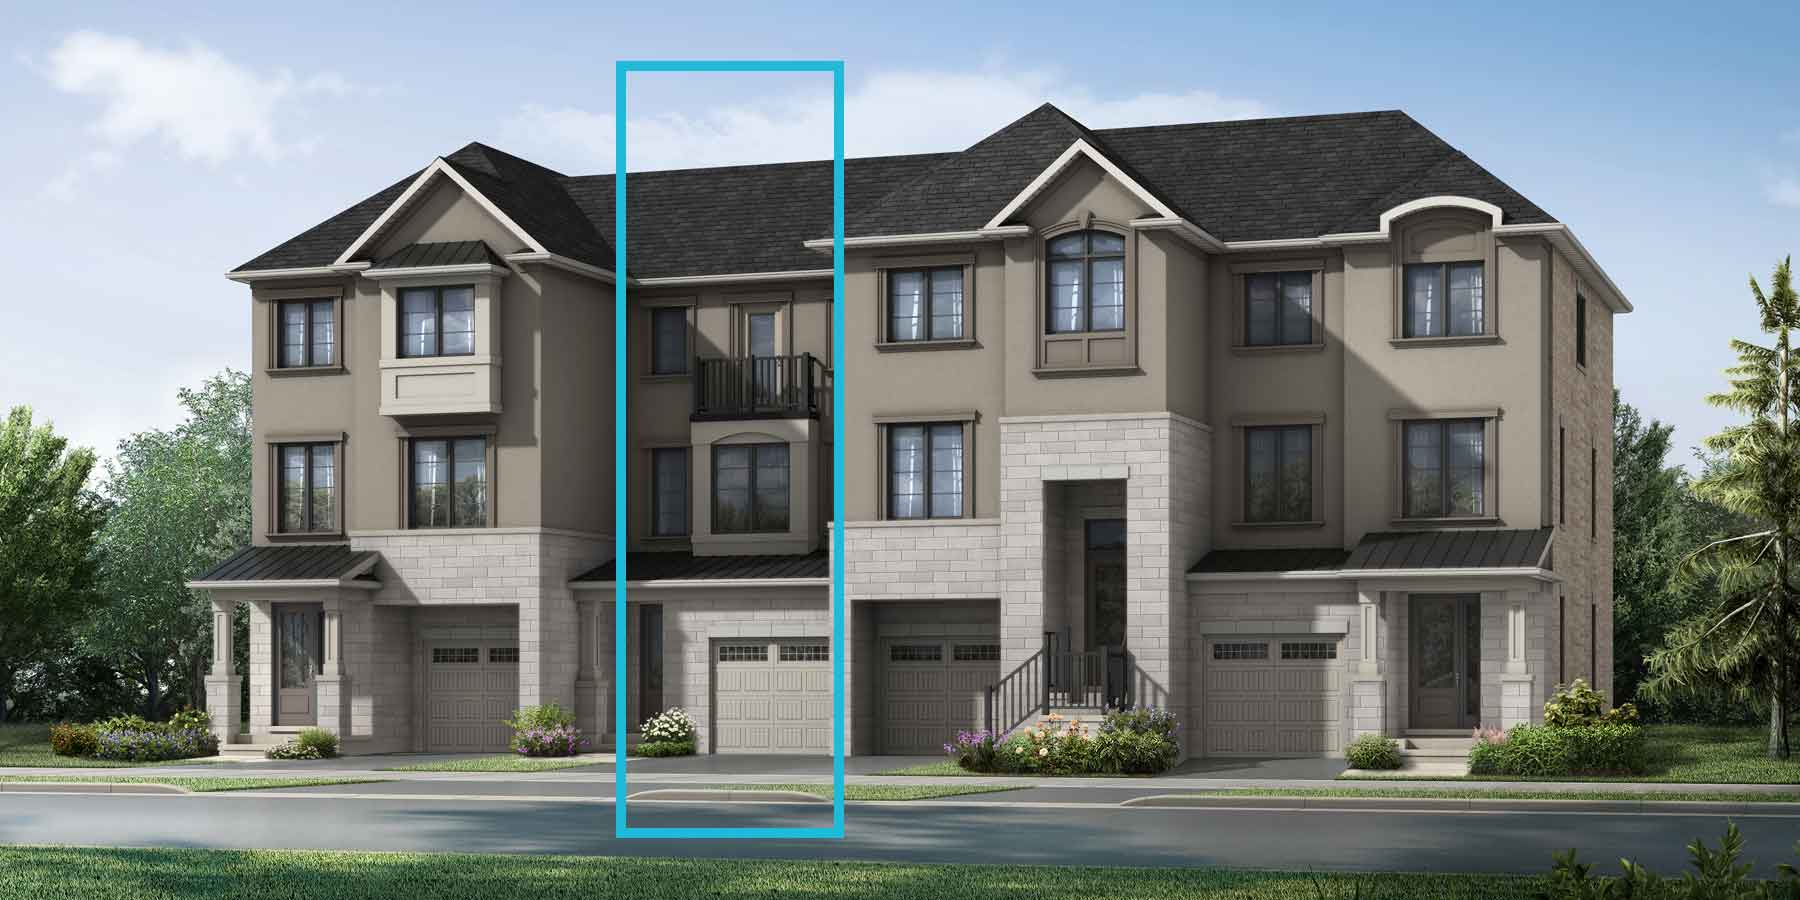 Northwick Plan TownHomes at The Nine in Mississauga Ontario by Mattamy Homes